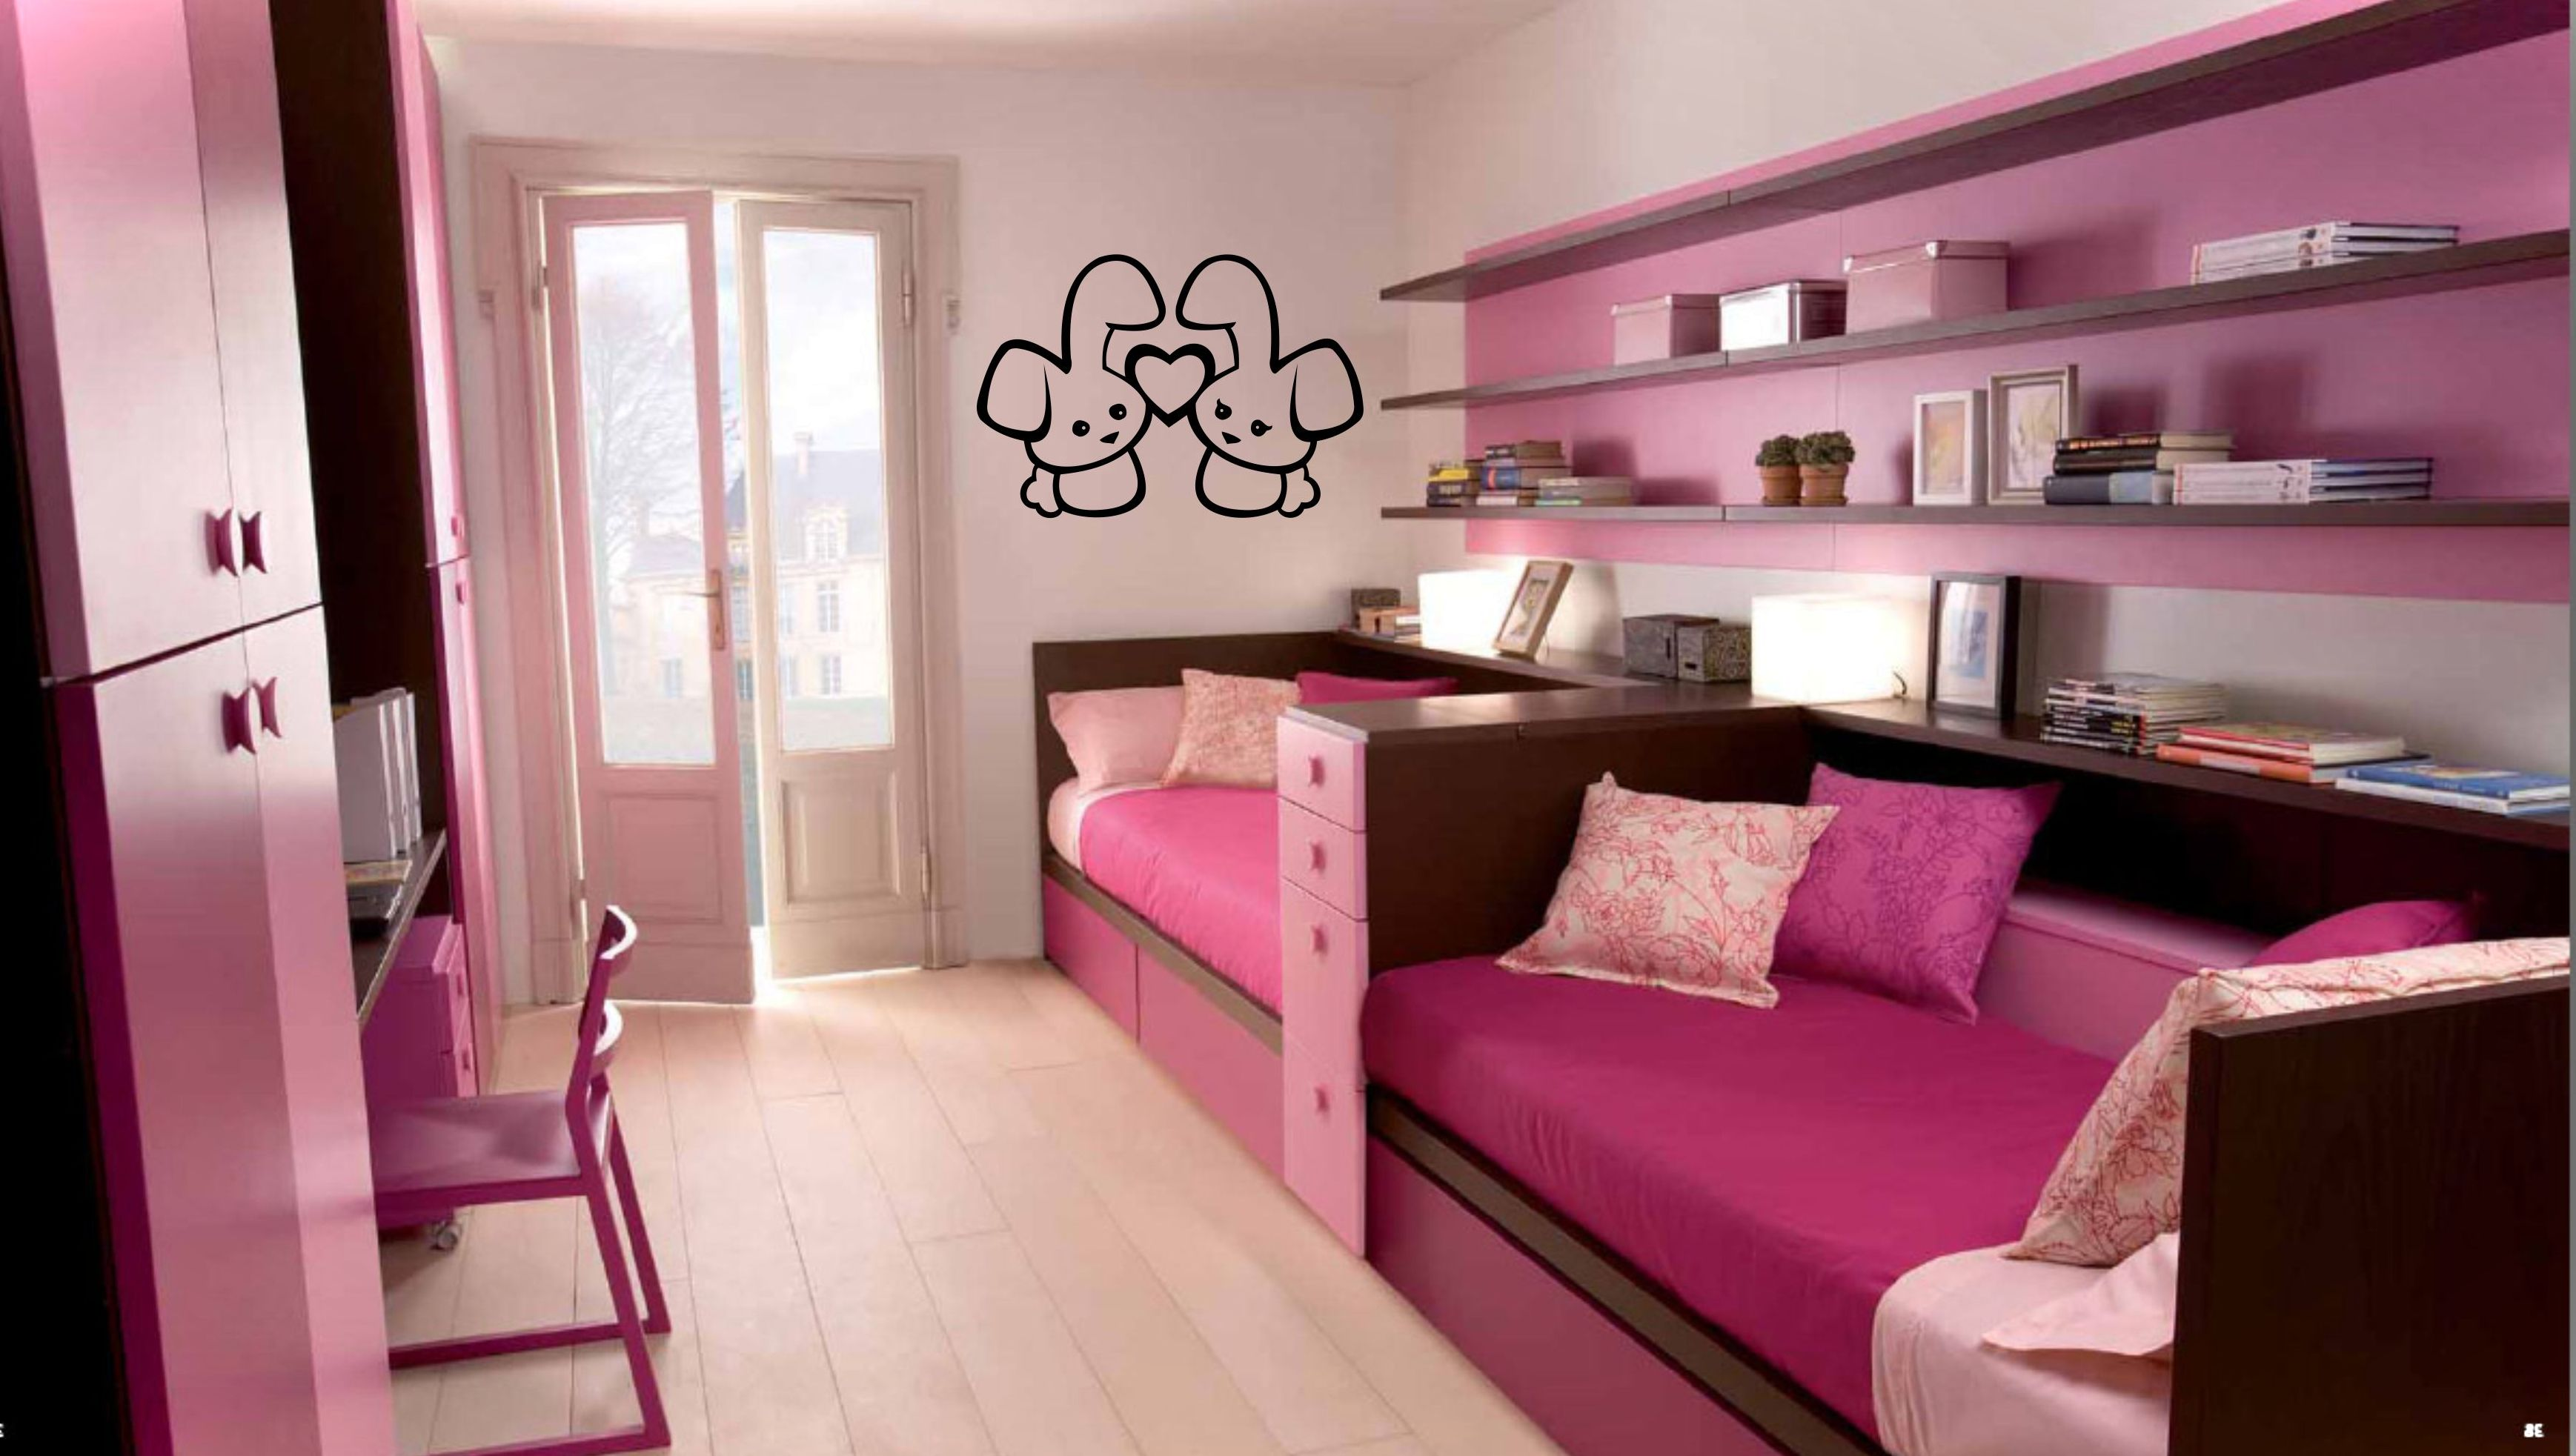 Charming Bedroom Interior For Girls With Bold Pink Accent For Furnishing  And Background Painting